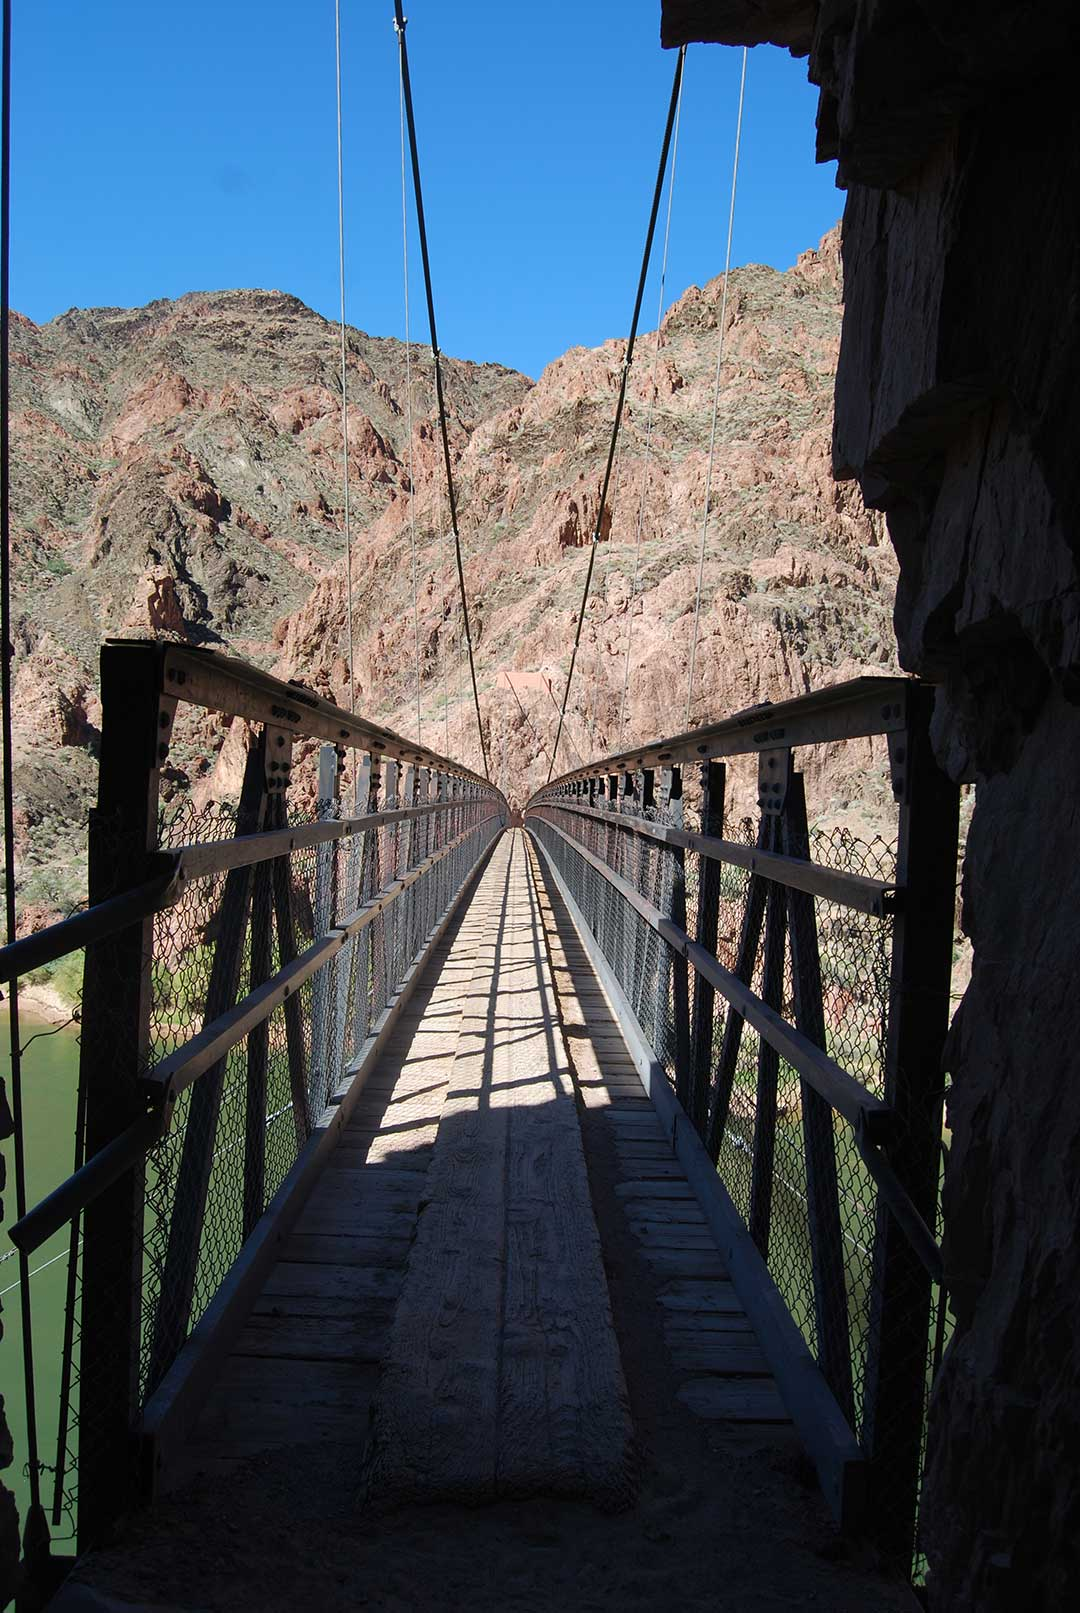 A hanging bridge over the Colorado River in Arizona's Grand Canyon. Photo © Tim Hull.